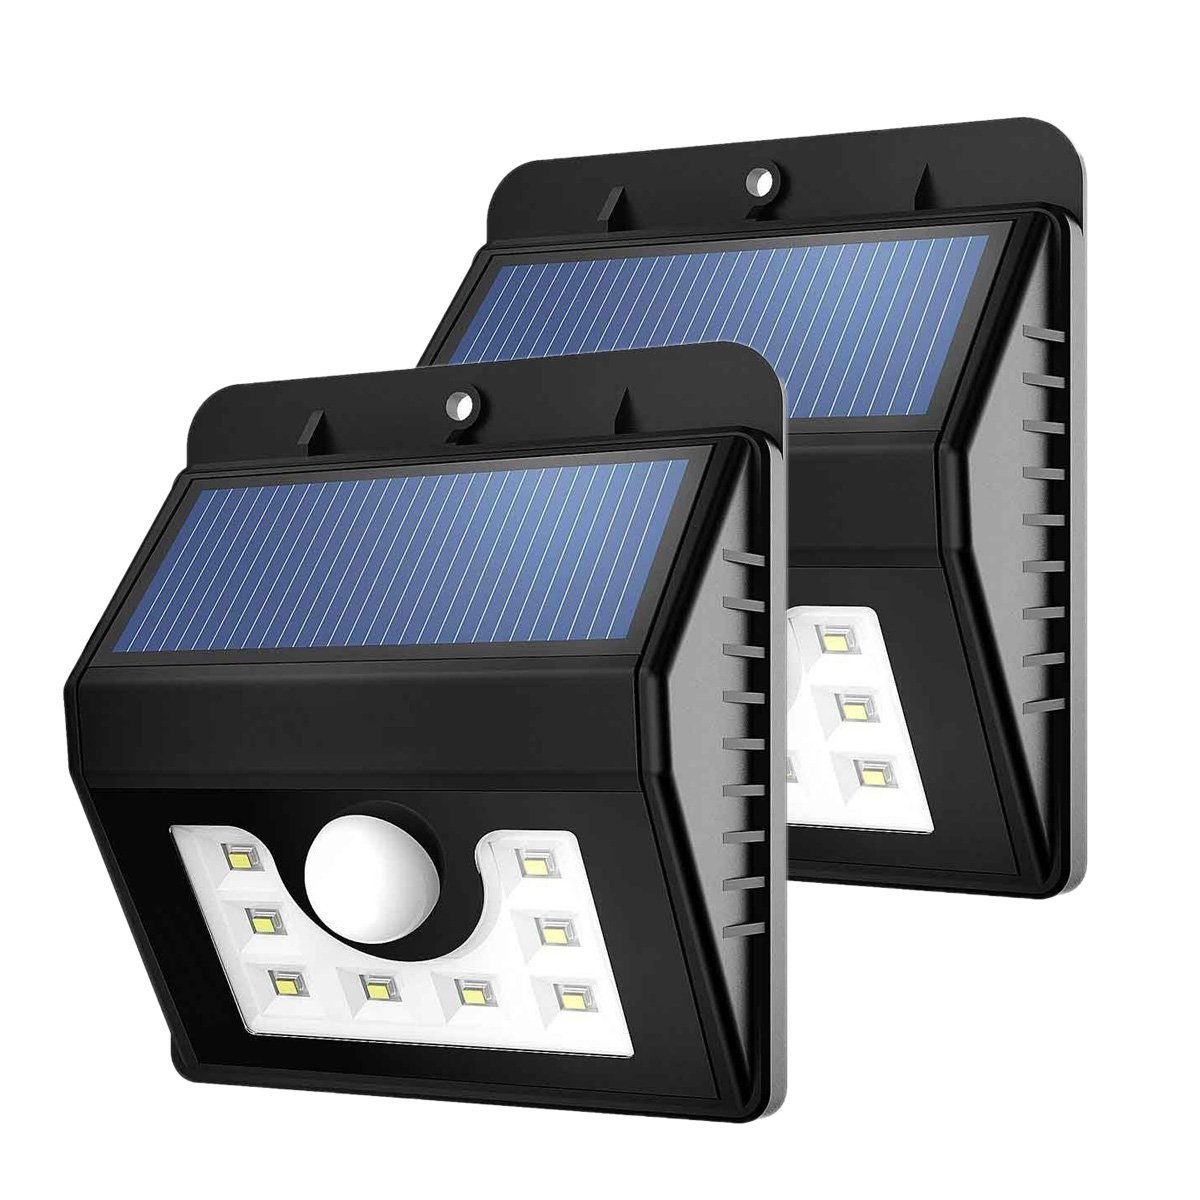 Solar Light Outdoor,WONFAST Waterproof Solar Power 8 LED Security Lighting Motion Sensor Wall Light for Garden Diveway Patio Fencing Path (2-Pack)